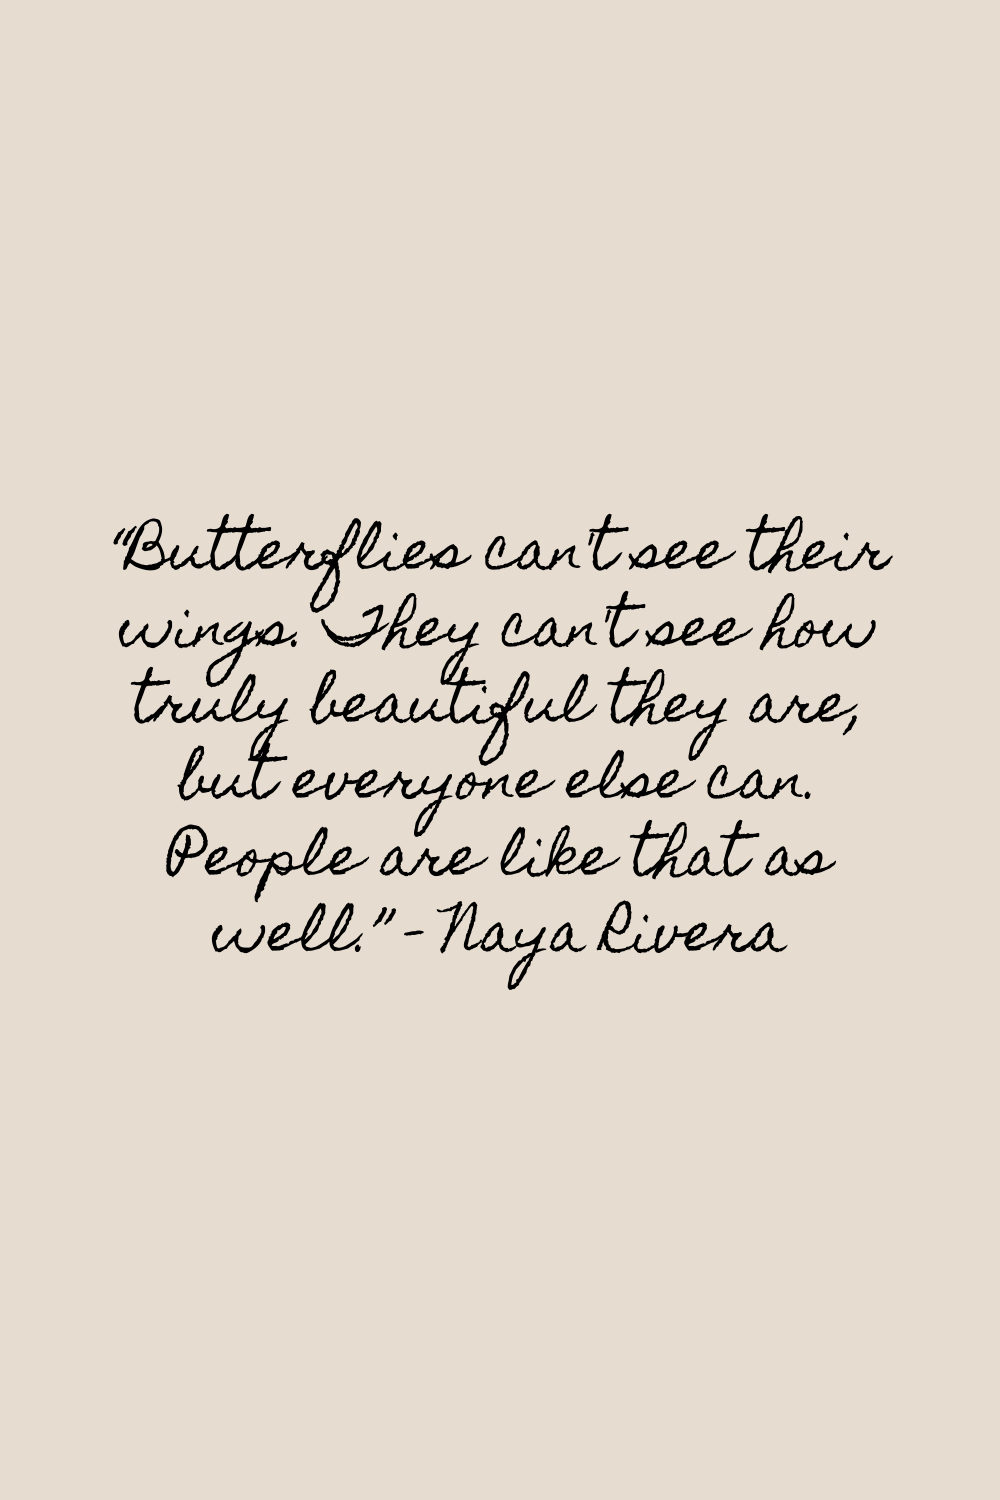 Butterfly Quotes Tumblr : butterfly, quotes, tumblr, Naya's, Butterfly, Quote, ❤️🦋I, Around, Years,, Remember, Constantly, Being, Reblogged, Tumblr